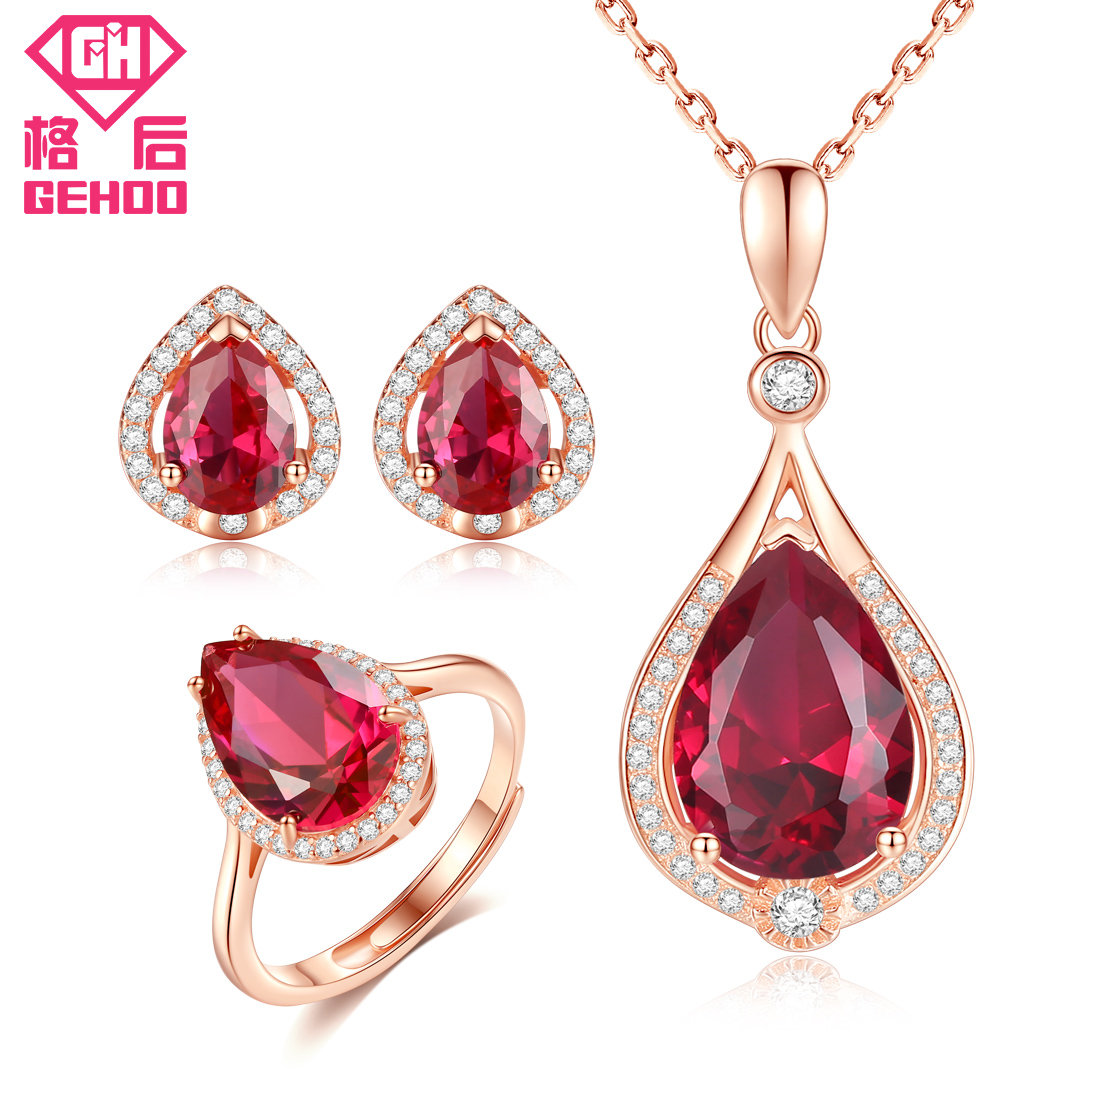 GEHOO 925 Sterling Silver Fine Jewelry Set Ruby Paved CZ Pendant Water Drop Design Women Charm Necklace & Stud Earrings & Ring купить в Москве 2019